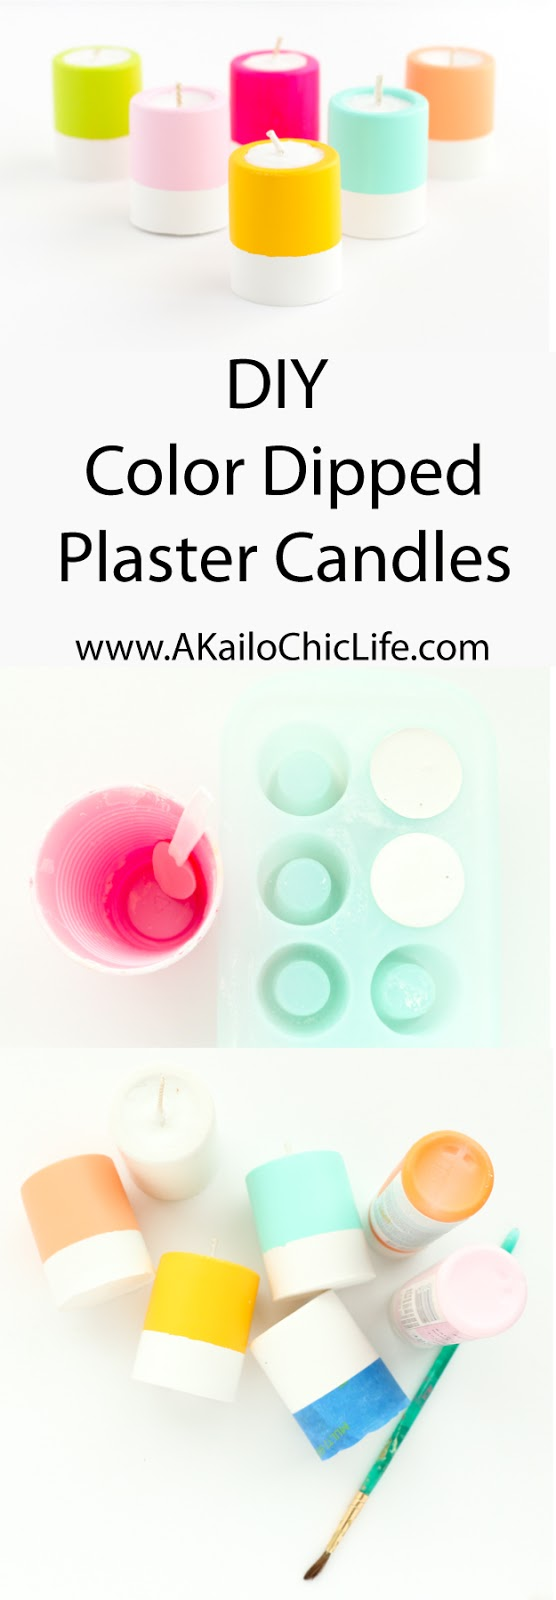 DIY Colorful Plaster Candles - Learn how to make your own candles and plaster candle holders - summer entertaining ideas - DIY candes - candle craft - colorful - colorblocked - gift idea - DIY gift - Summer Party